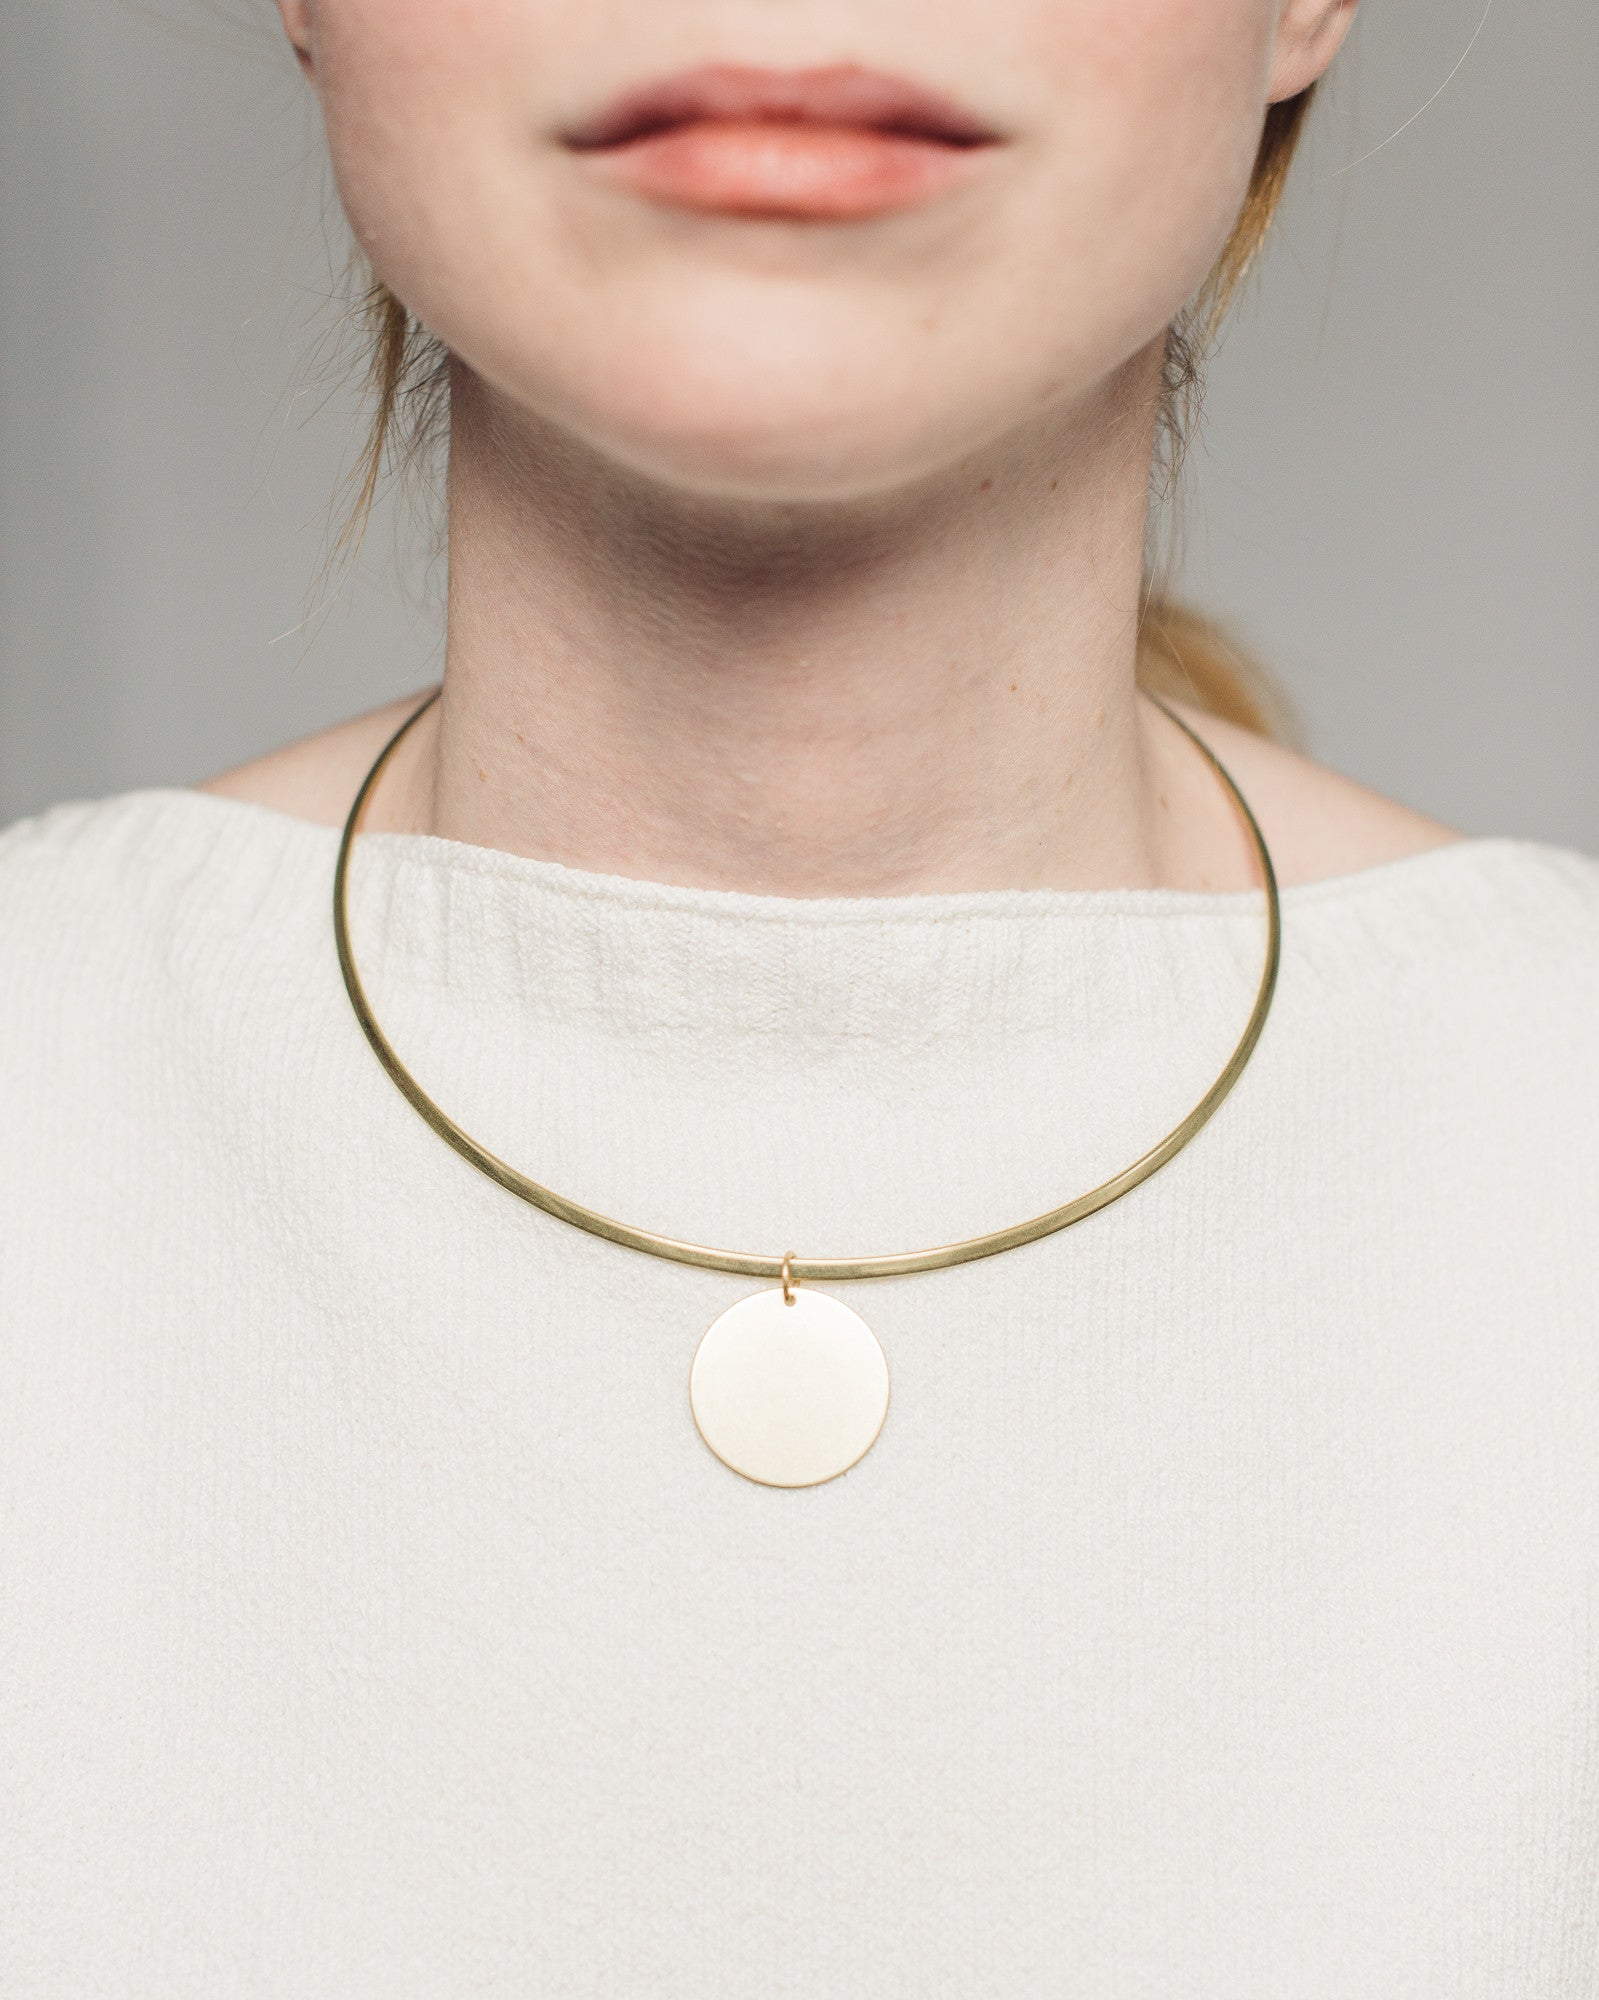 AK Studio Lucid Necklace